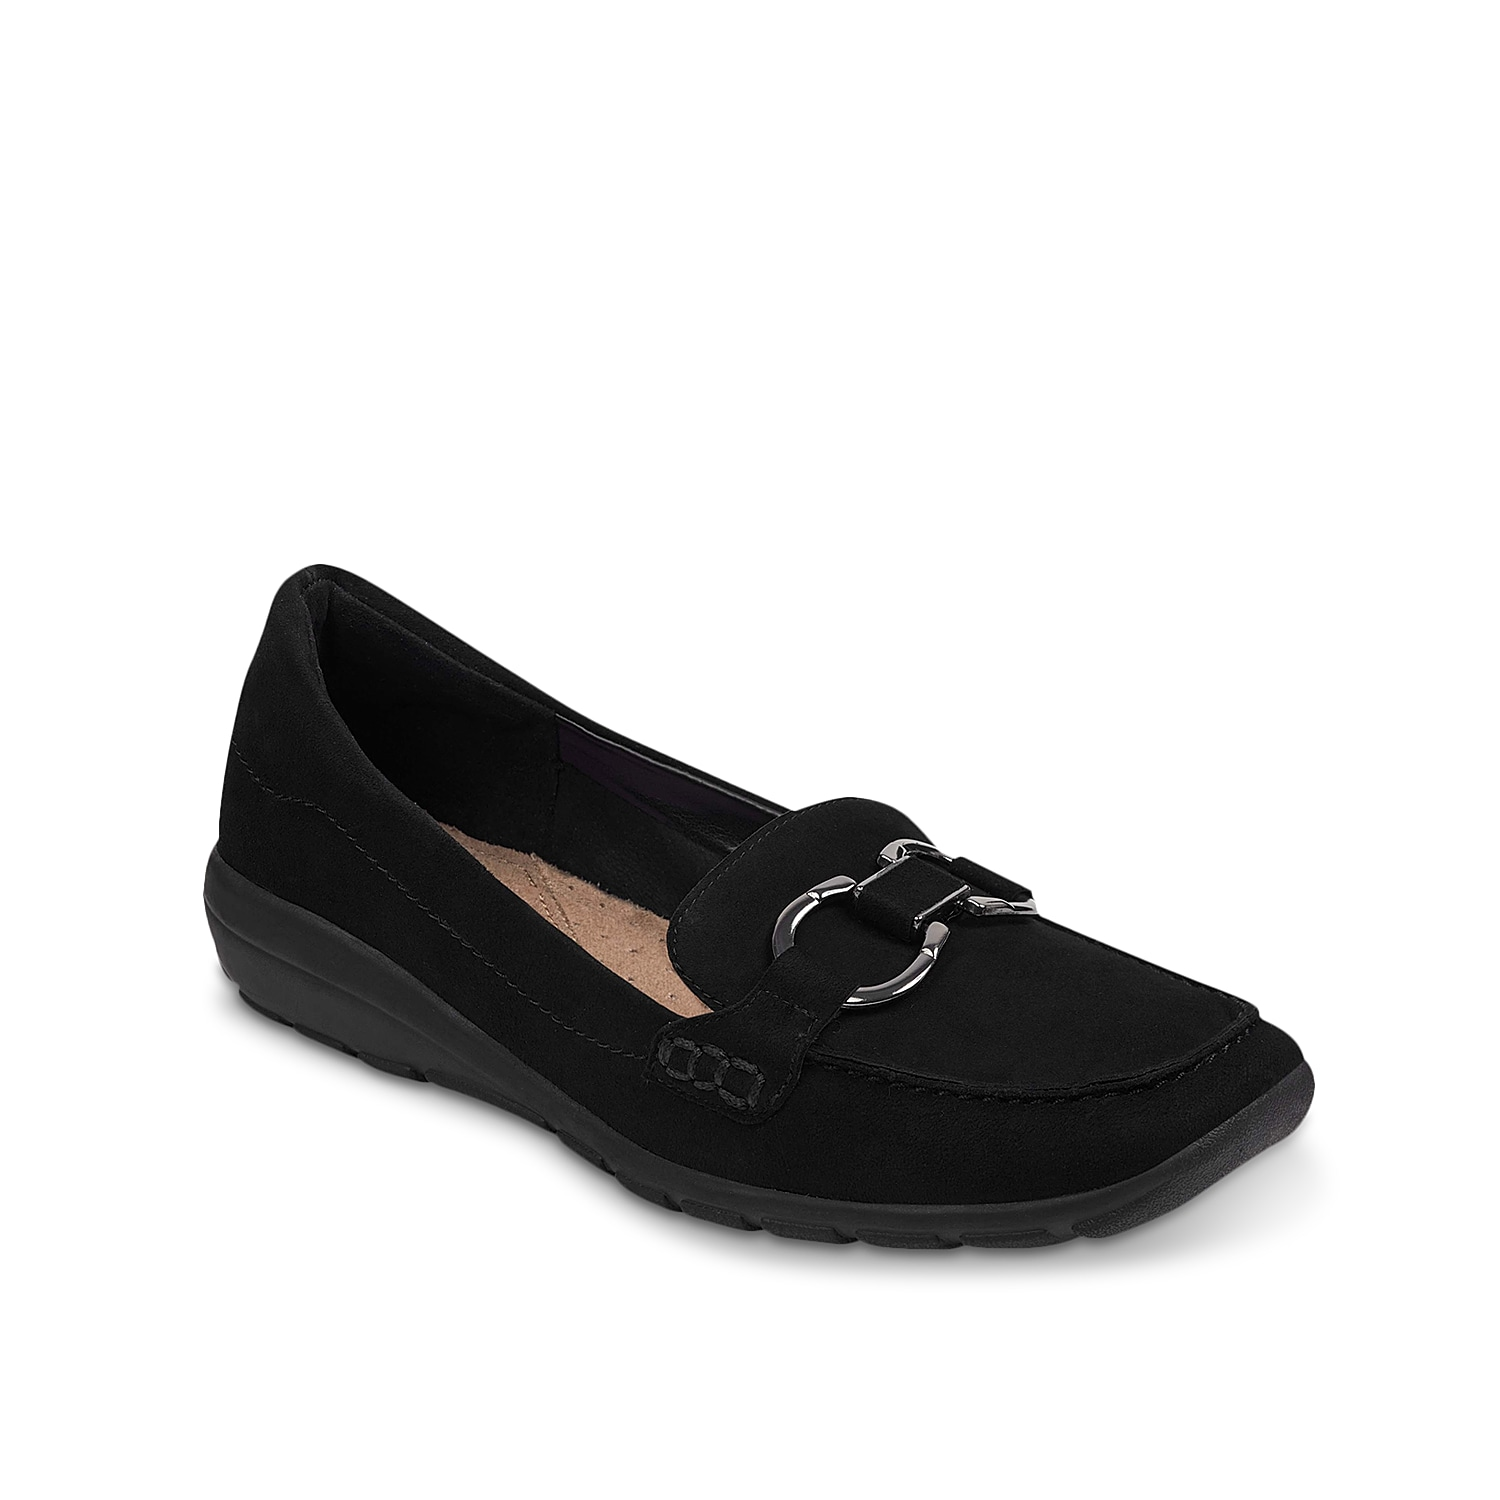 Lend lasting comfort to your day with the Avienta loafers from Easy Spirit. These suede slip-ons feature a classy square toe and a padded back counter for extra cushioning.